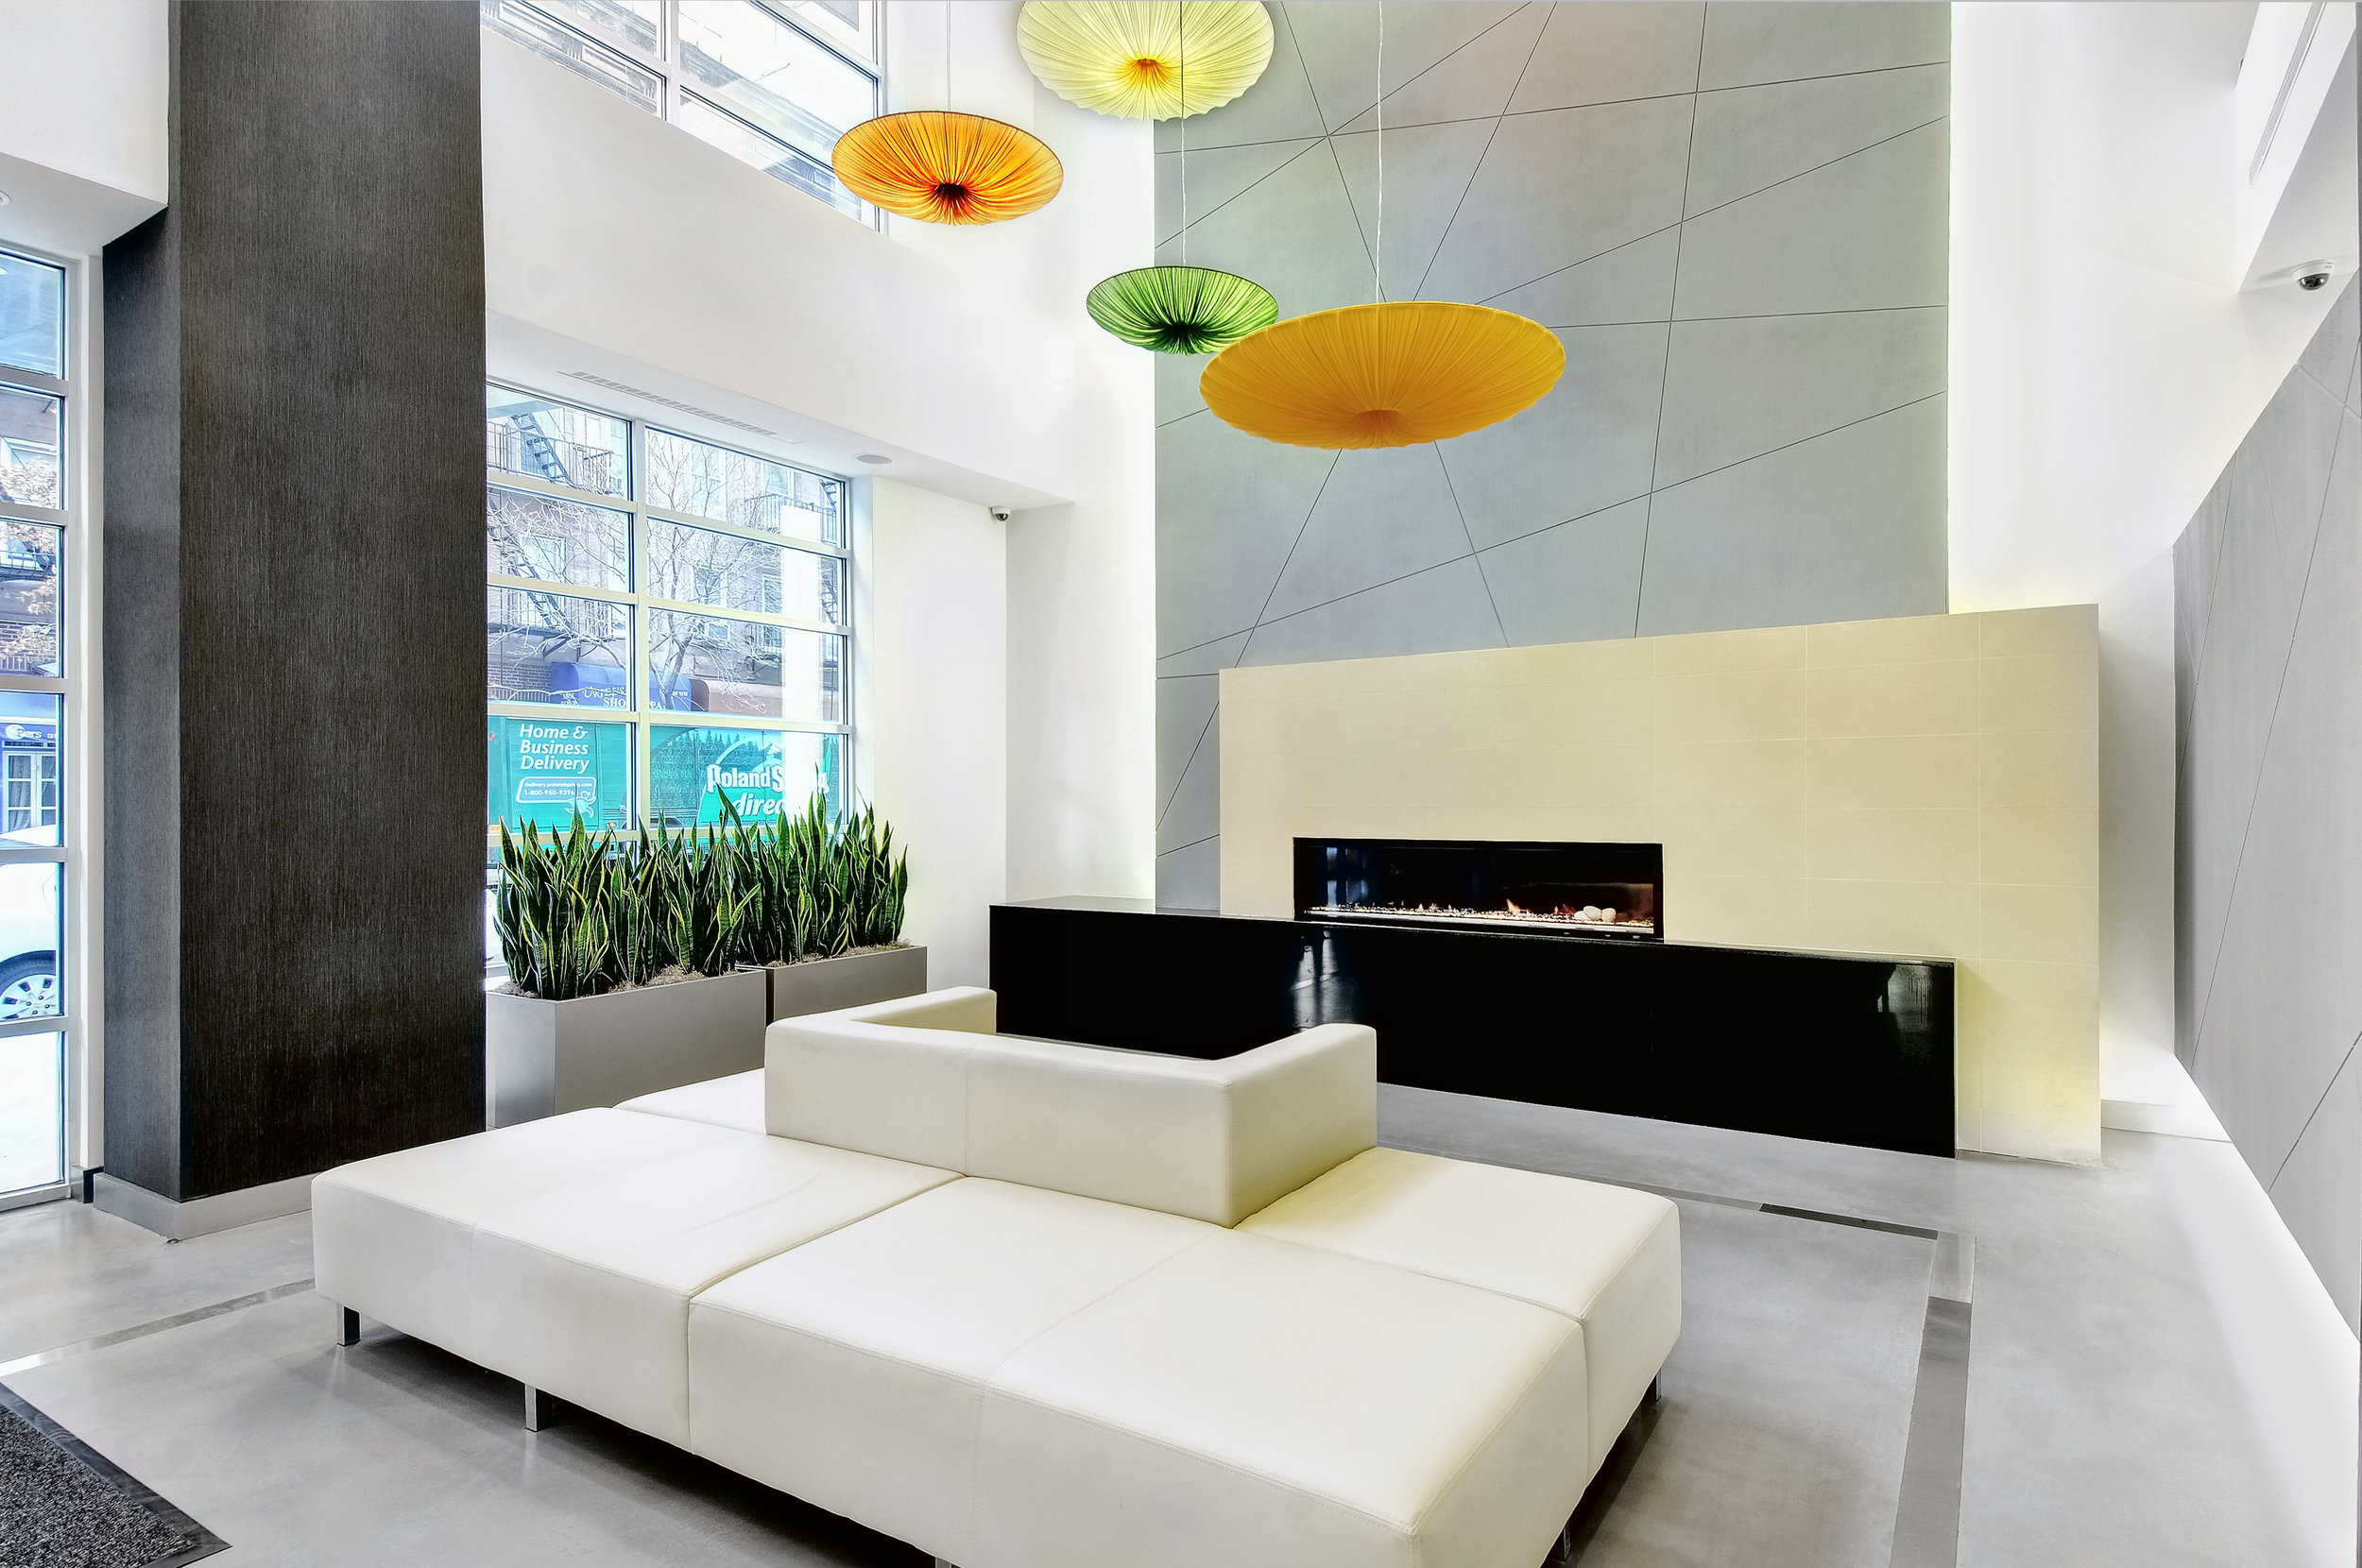 260_West_26th_St_Lobby2.jpg